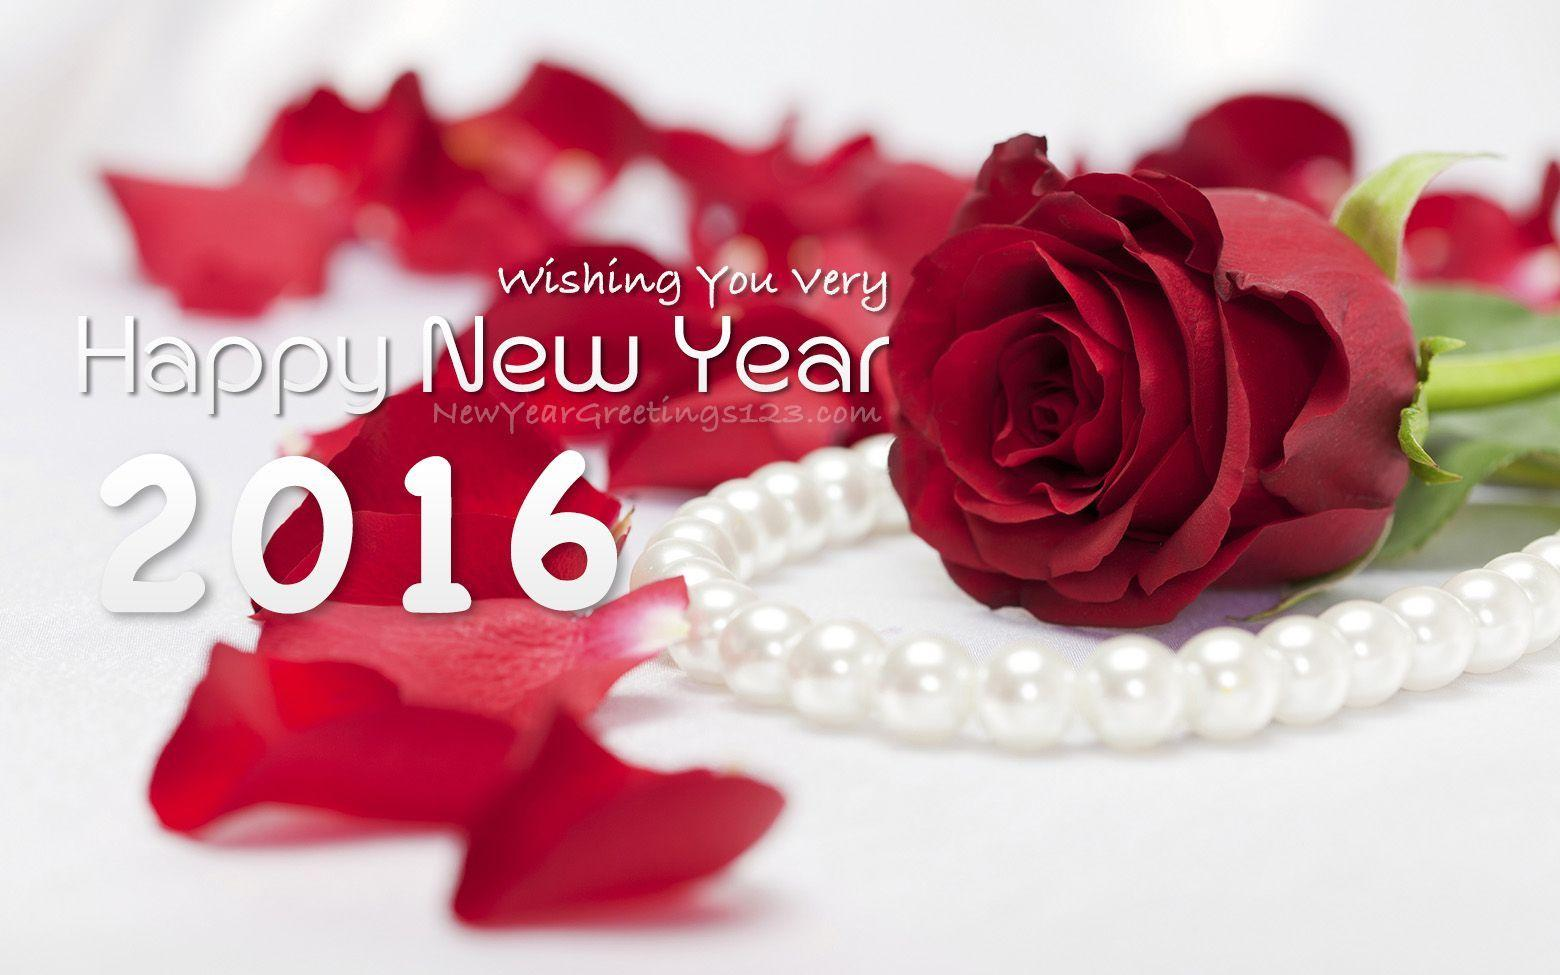 Love Wallpaper For New Year 2016 : 2016 New Year Wallpapers - Wallpaper cave